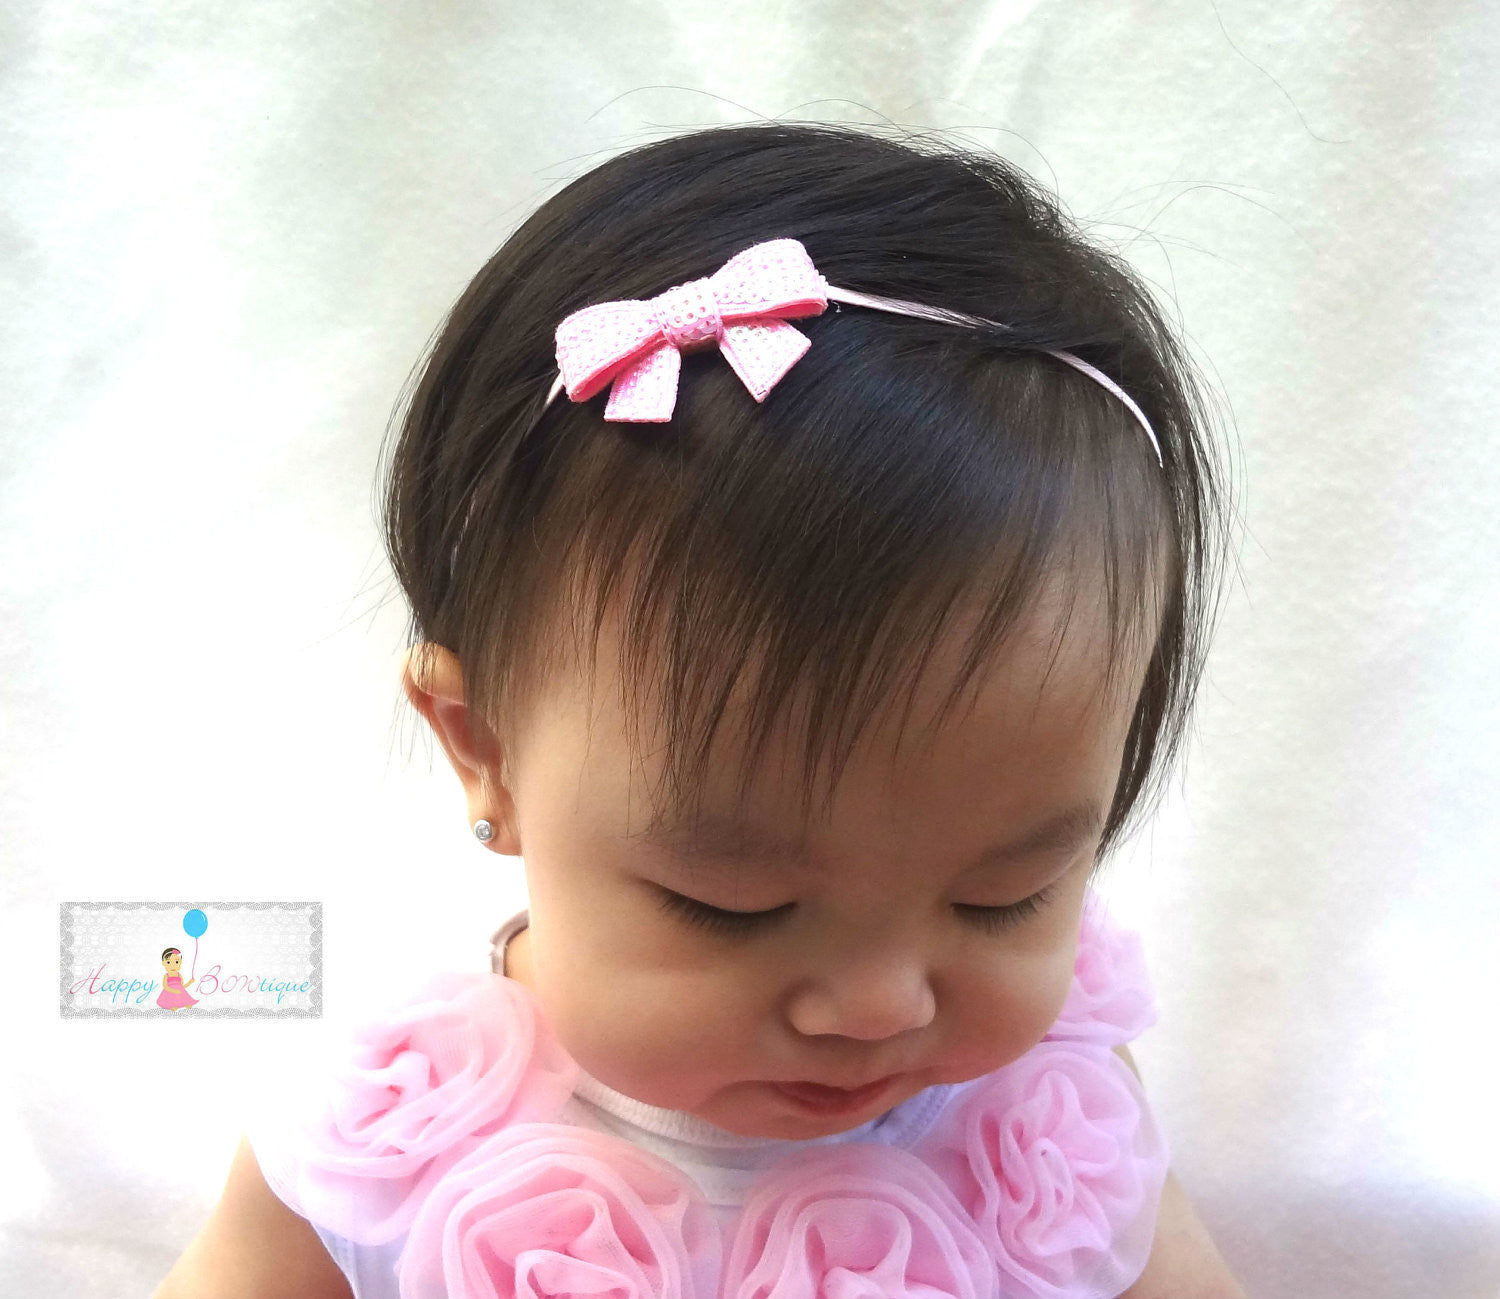 Petite Sequin Bow U-Pick Color, Baby Sequin Bow Headbands - Happy BOWtique - children's clothing, Baby Girl clothing